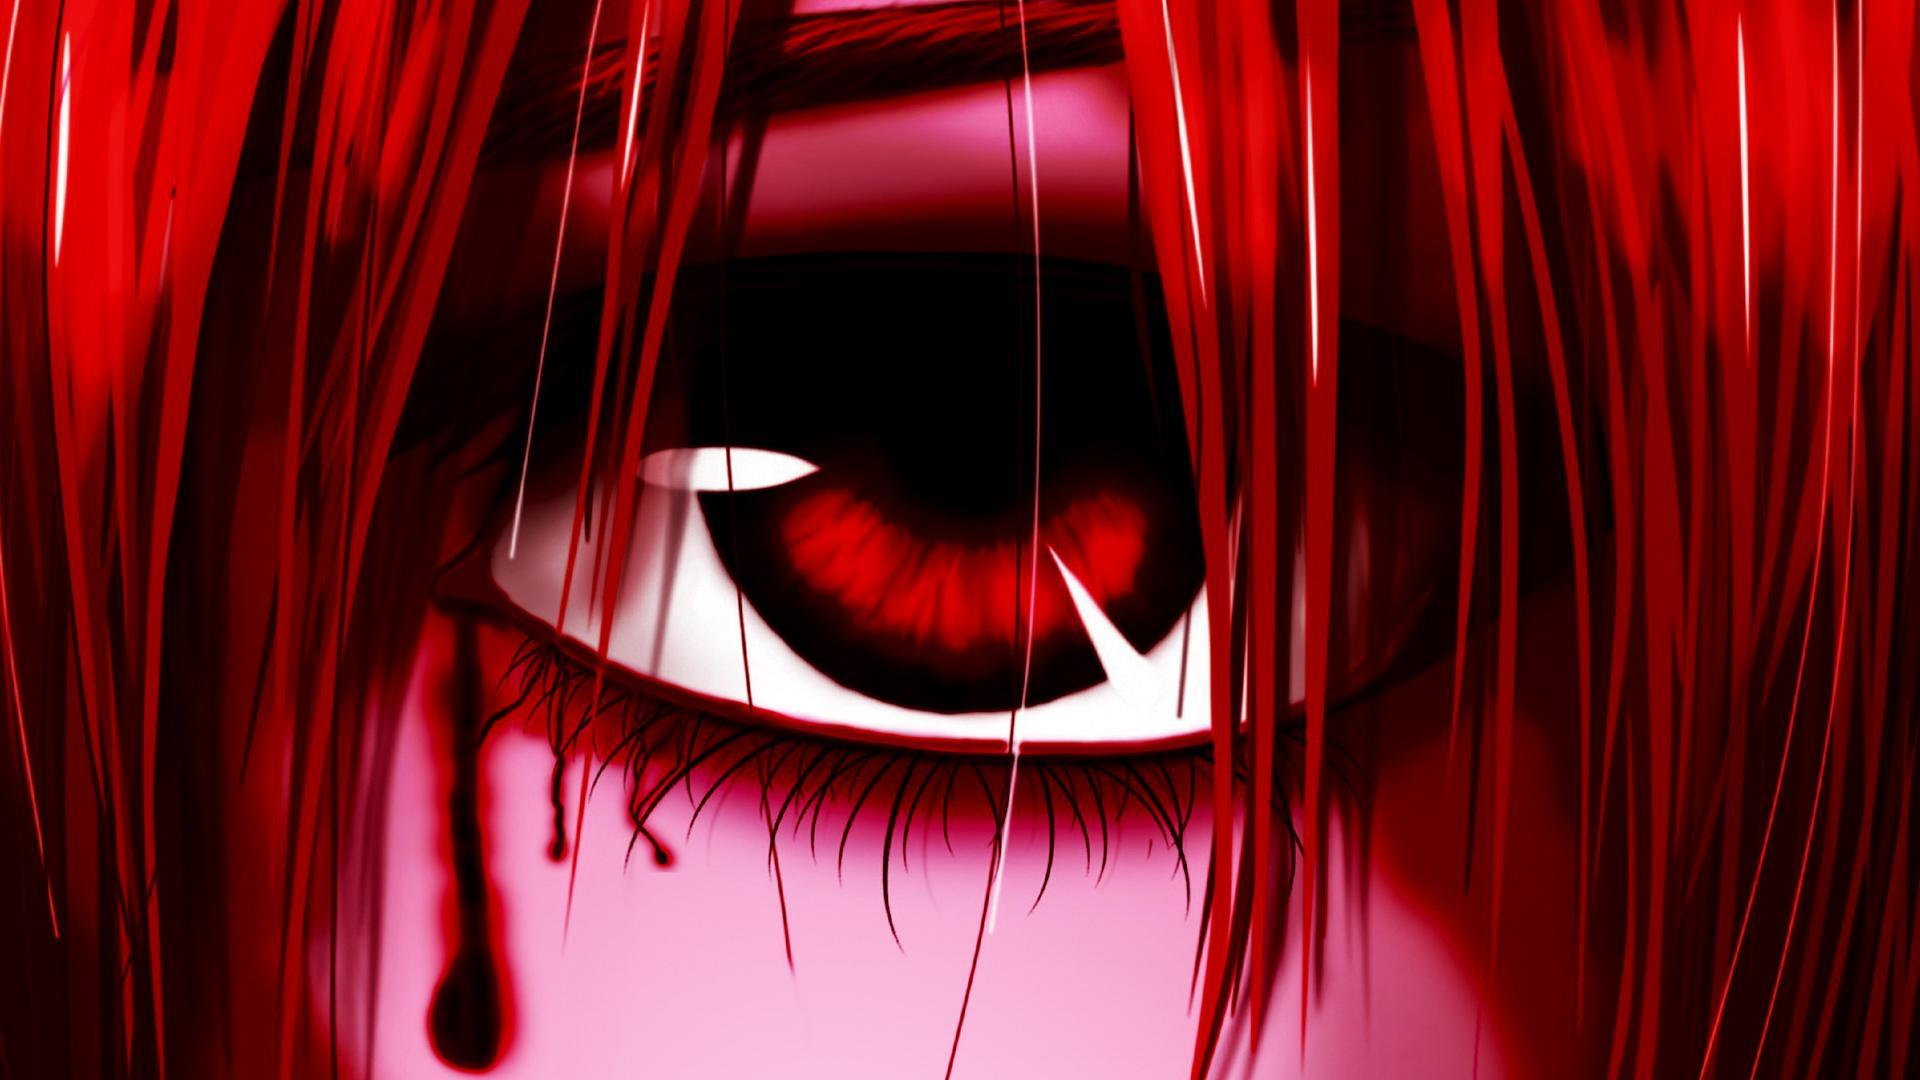 Which personal do you like better on elfen lied?